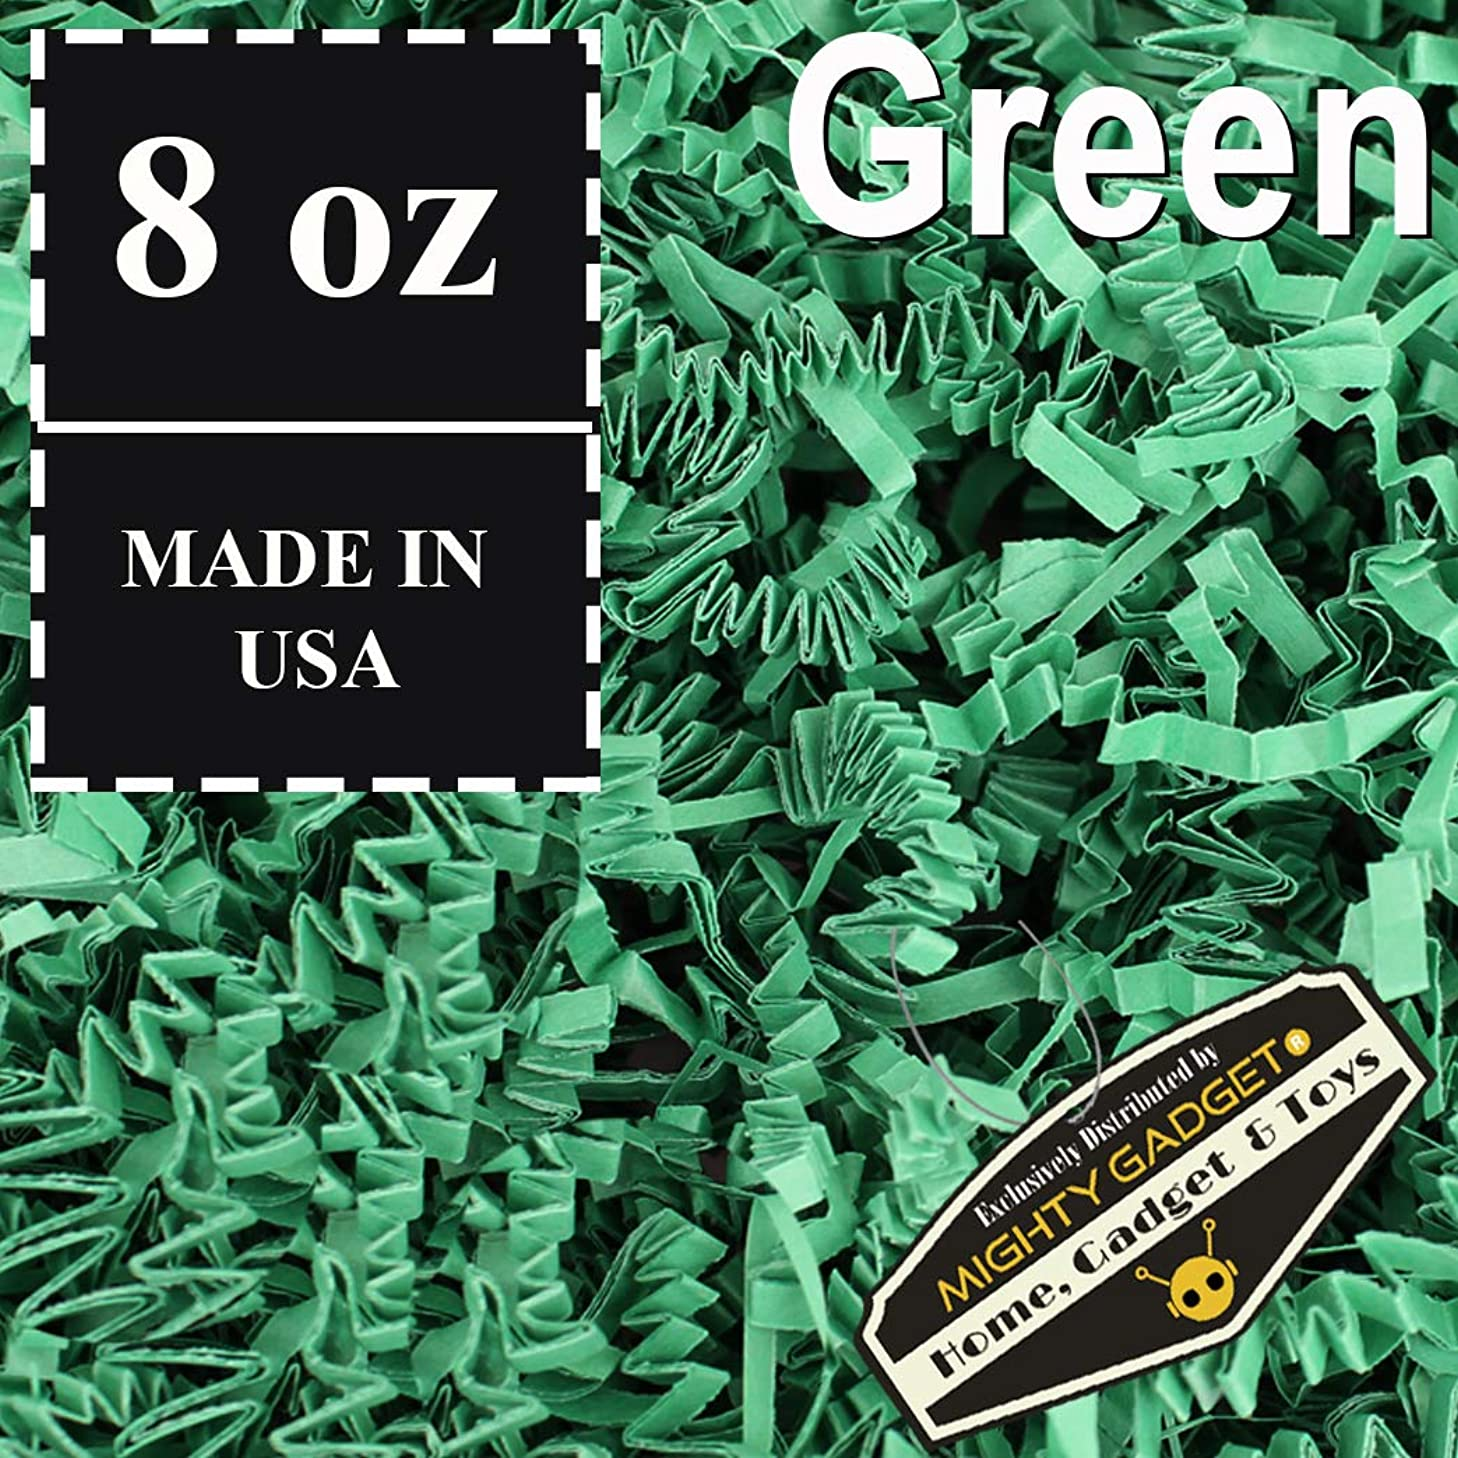 Mighty Gadget (R) 1/2 LB Green Crinkle Cut Paper Shred Filler for Gift Wrapping & Basket Filling